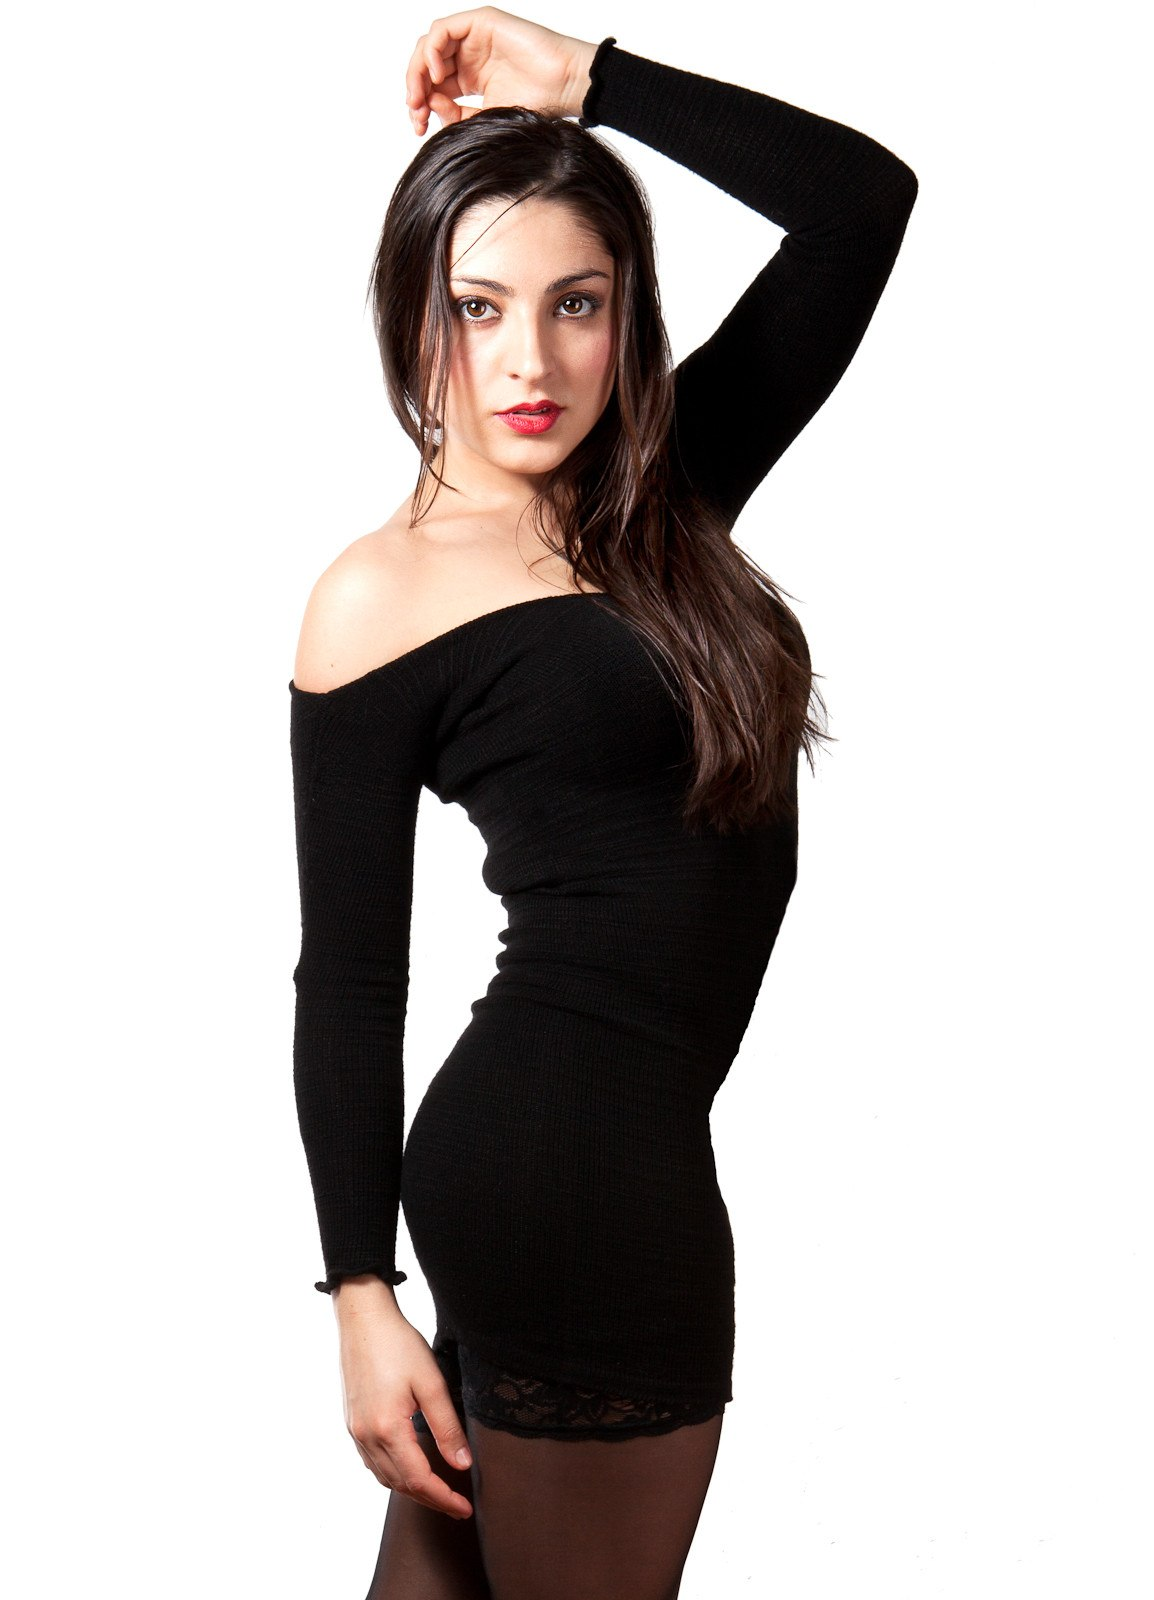 Sexy Little Black Stretch Knit Dress & 28 Inch Thigh High Leg Warmers KD dance Made In USA @KDdanceNewYork #MadeInUSA - 3